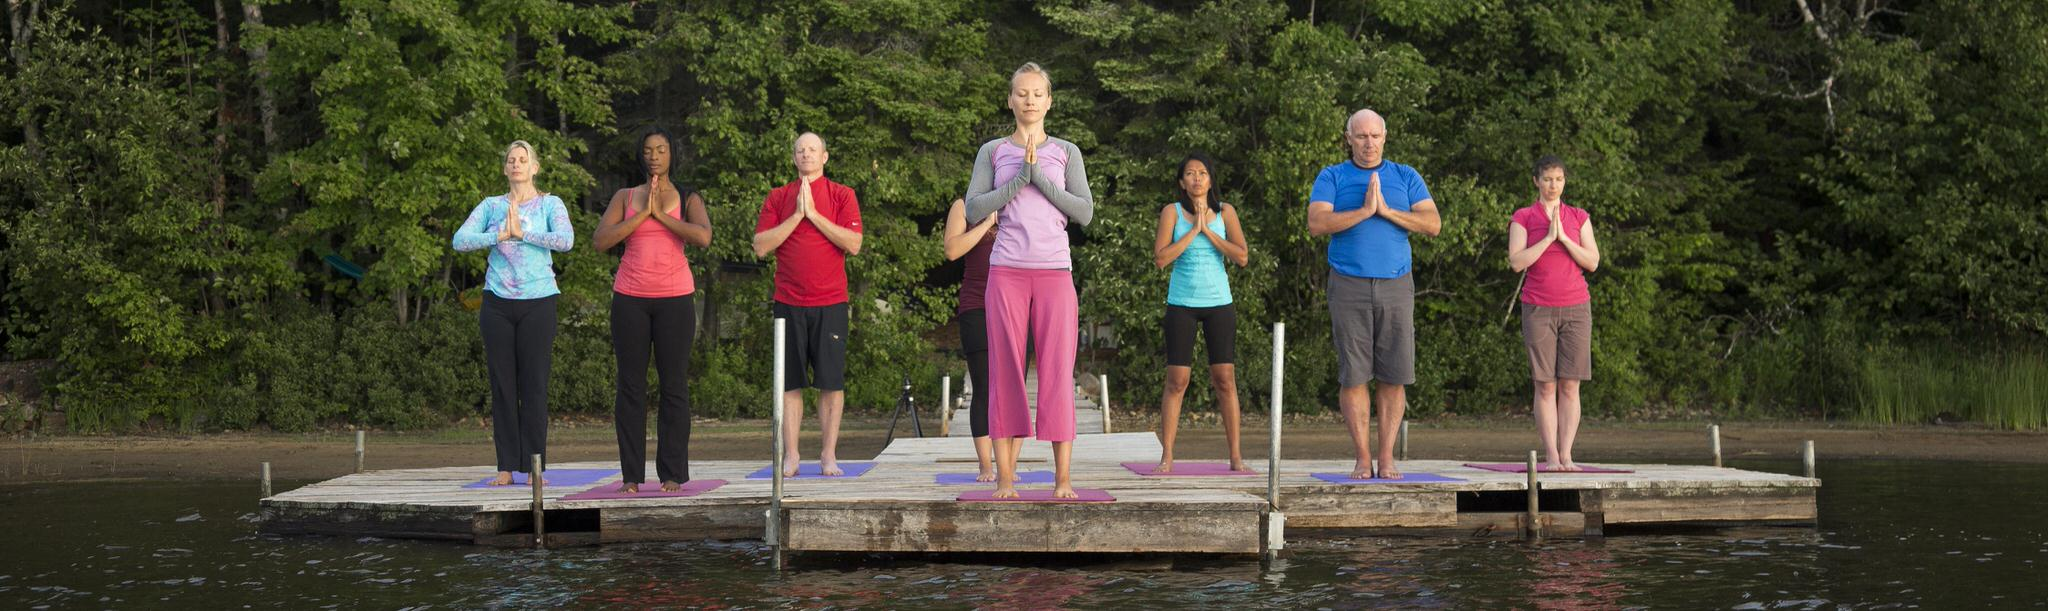 A group of people practicing yoga on a lakeside dock